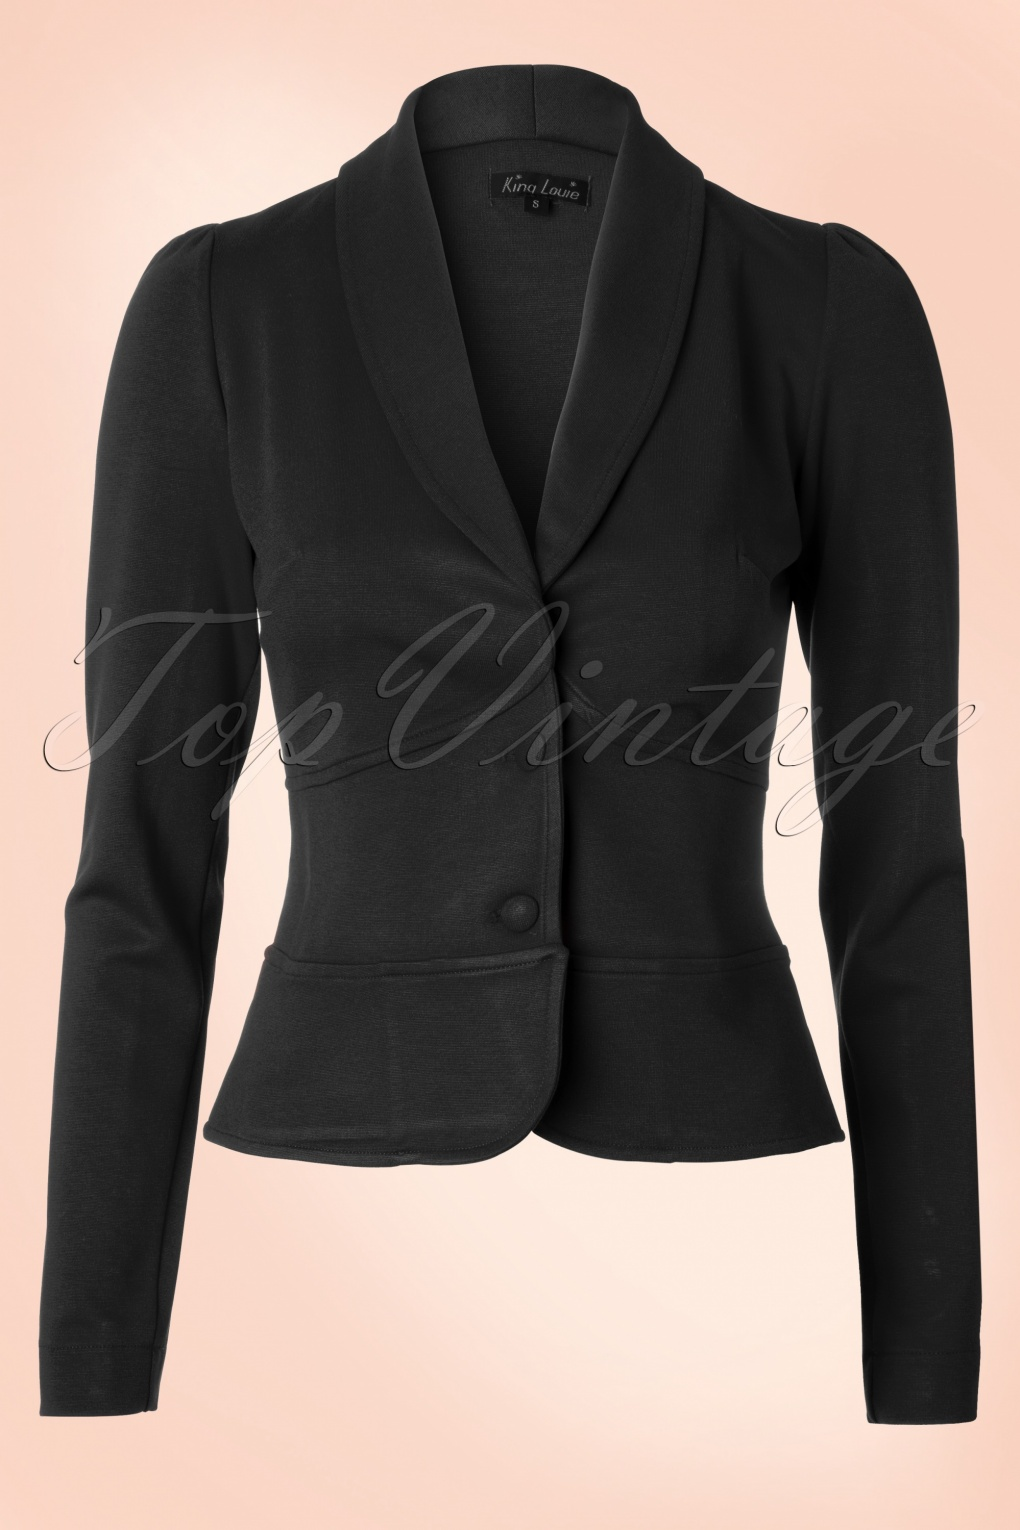 New 1940s Style Coats and Jackets for Sale Smoking Jacket Milano in Black £95.50 AT vintagedancer.com